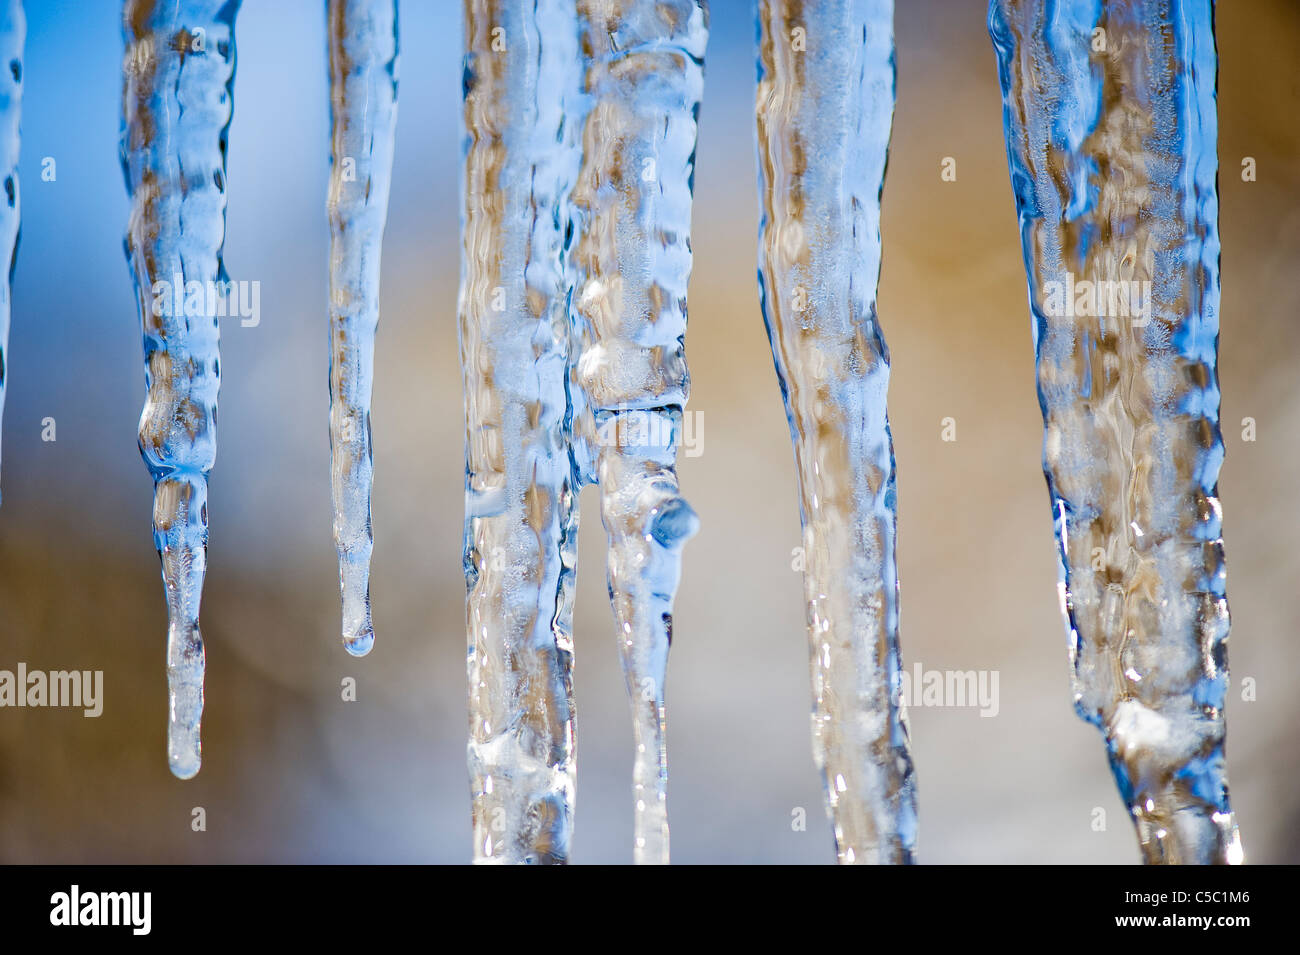 Extreme close-up of icicles against blurred background - Stock Image